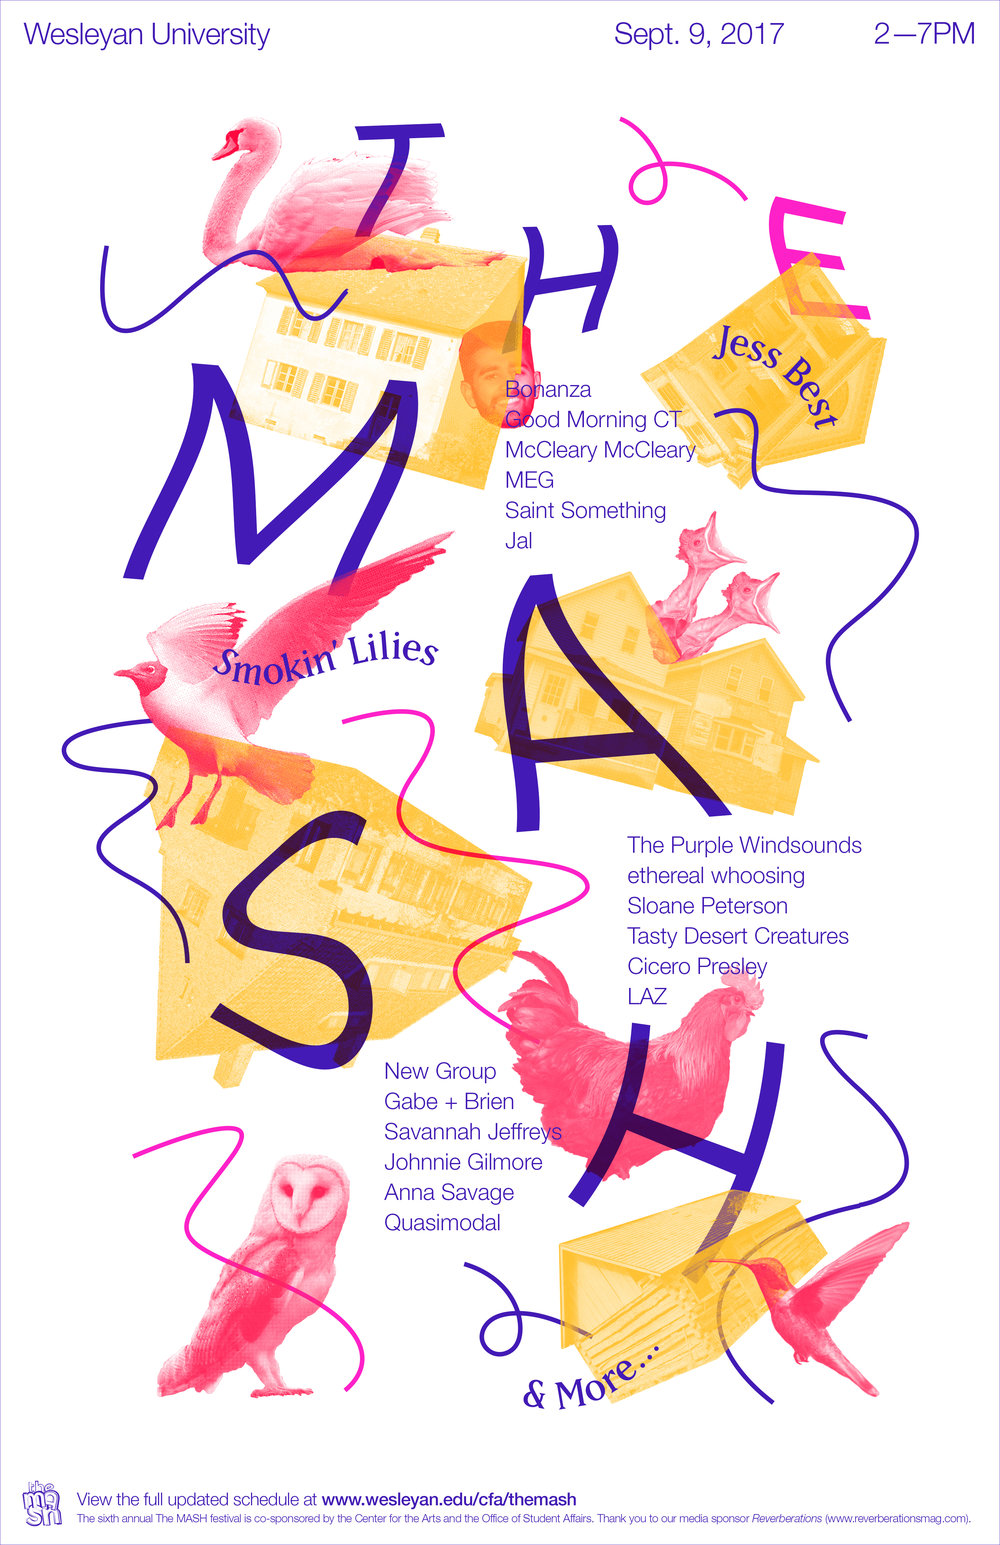 Poster (2016) designed for THE MASH student-run music festival, commissioned by Wesleyan's Center for the Arts.